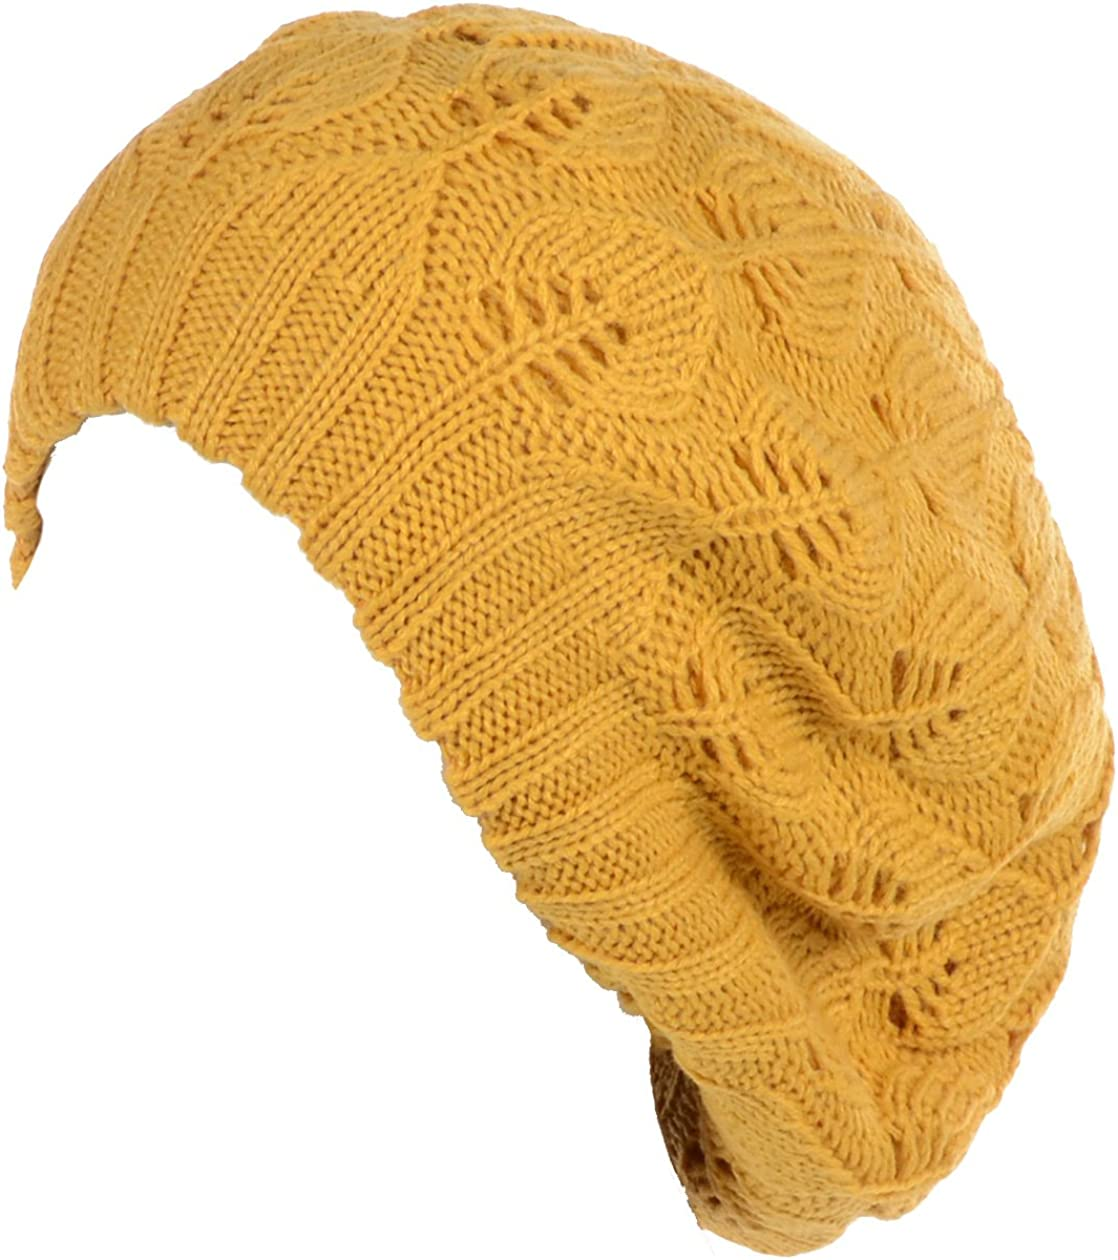 BYOS Women Mid-Weight Slouchy Leafy Cutout Crochet Soft Knit French Beret Hat